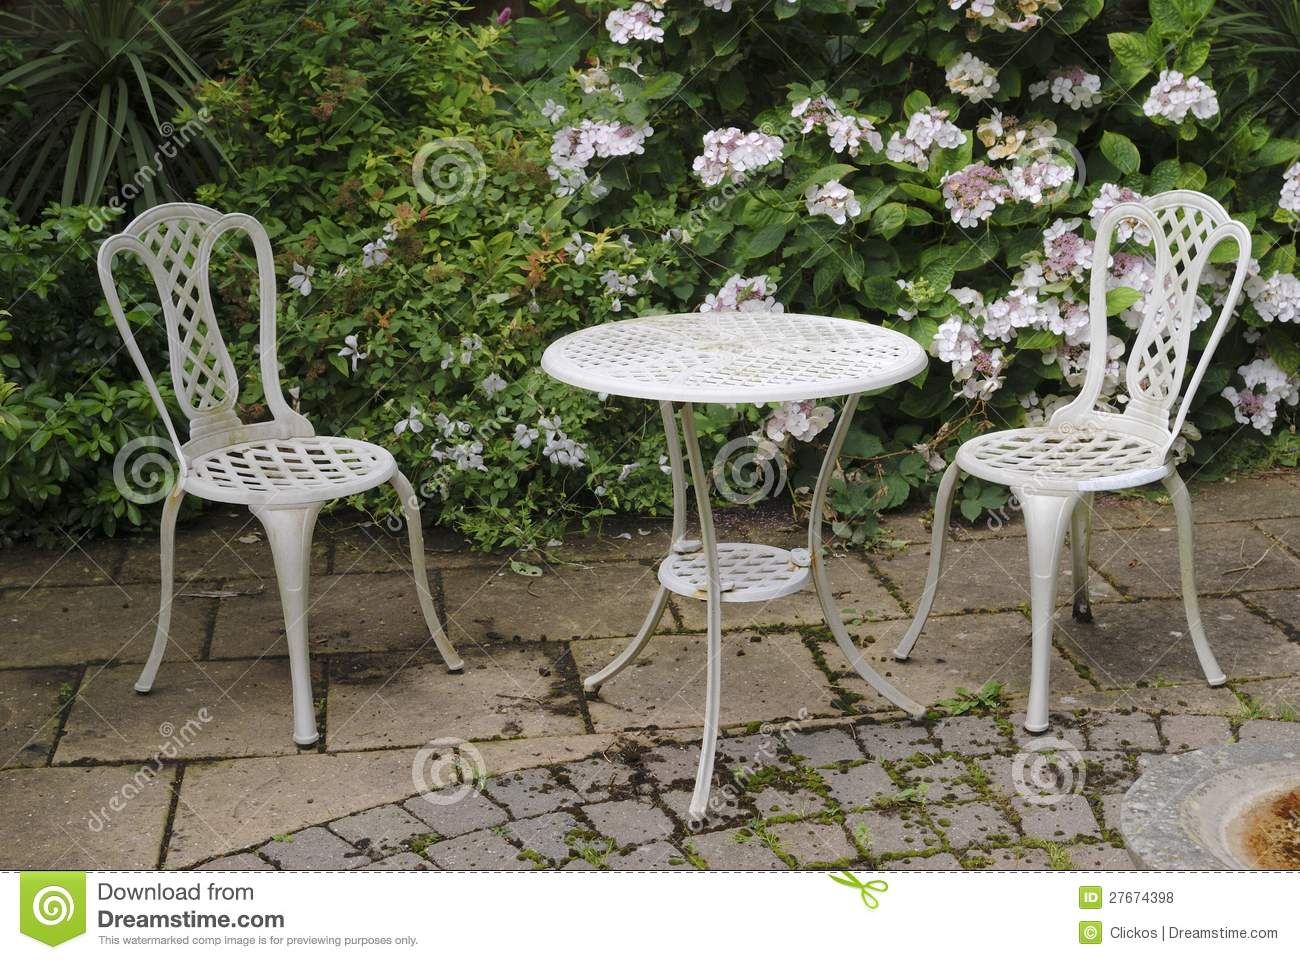 Garden table and chairs royalty free stock photos image for Garden table and chairs